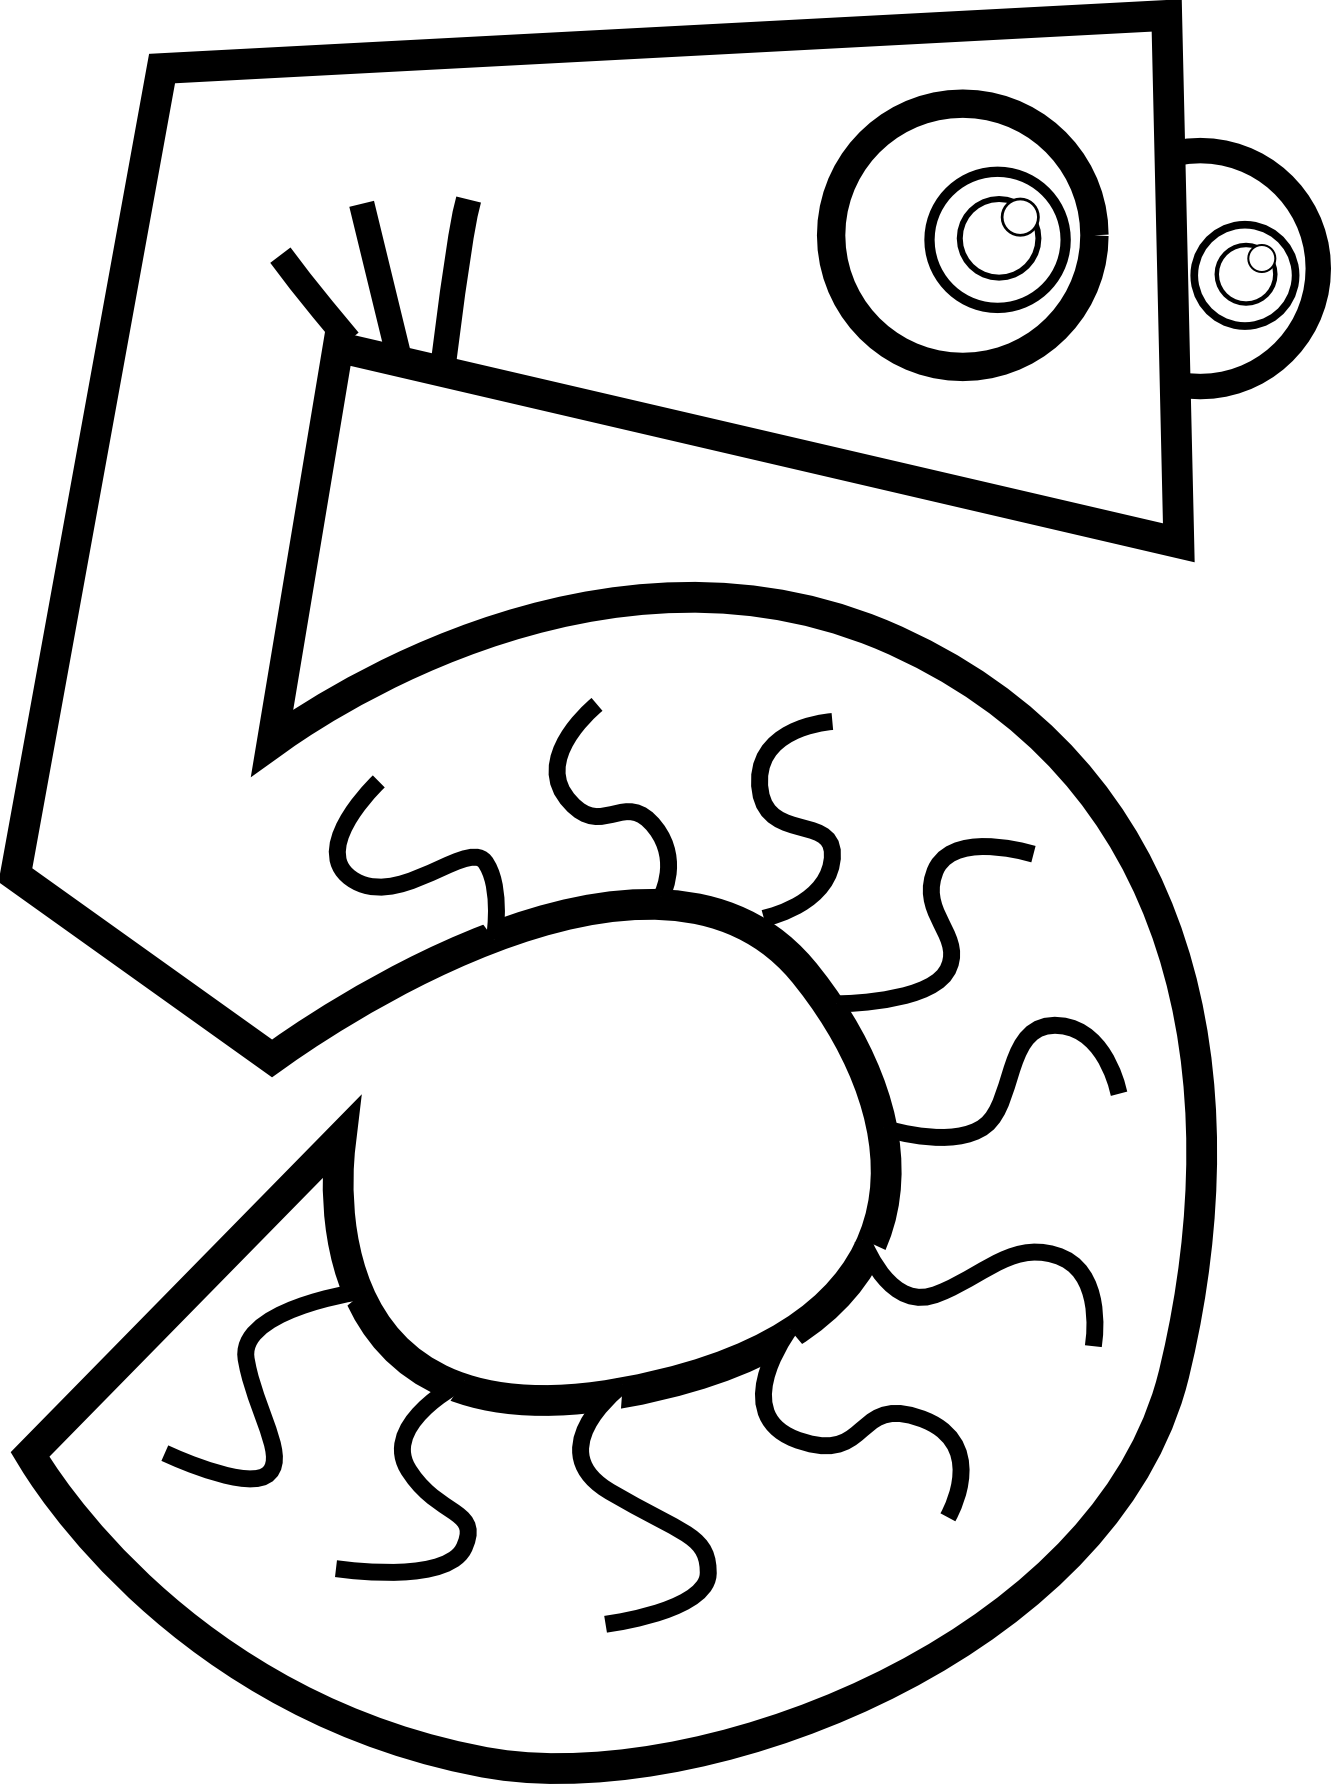 Dice clipart five. Number clip art library